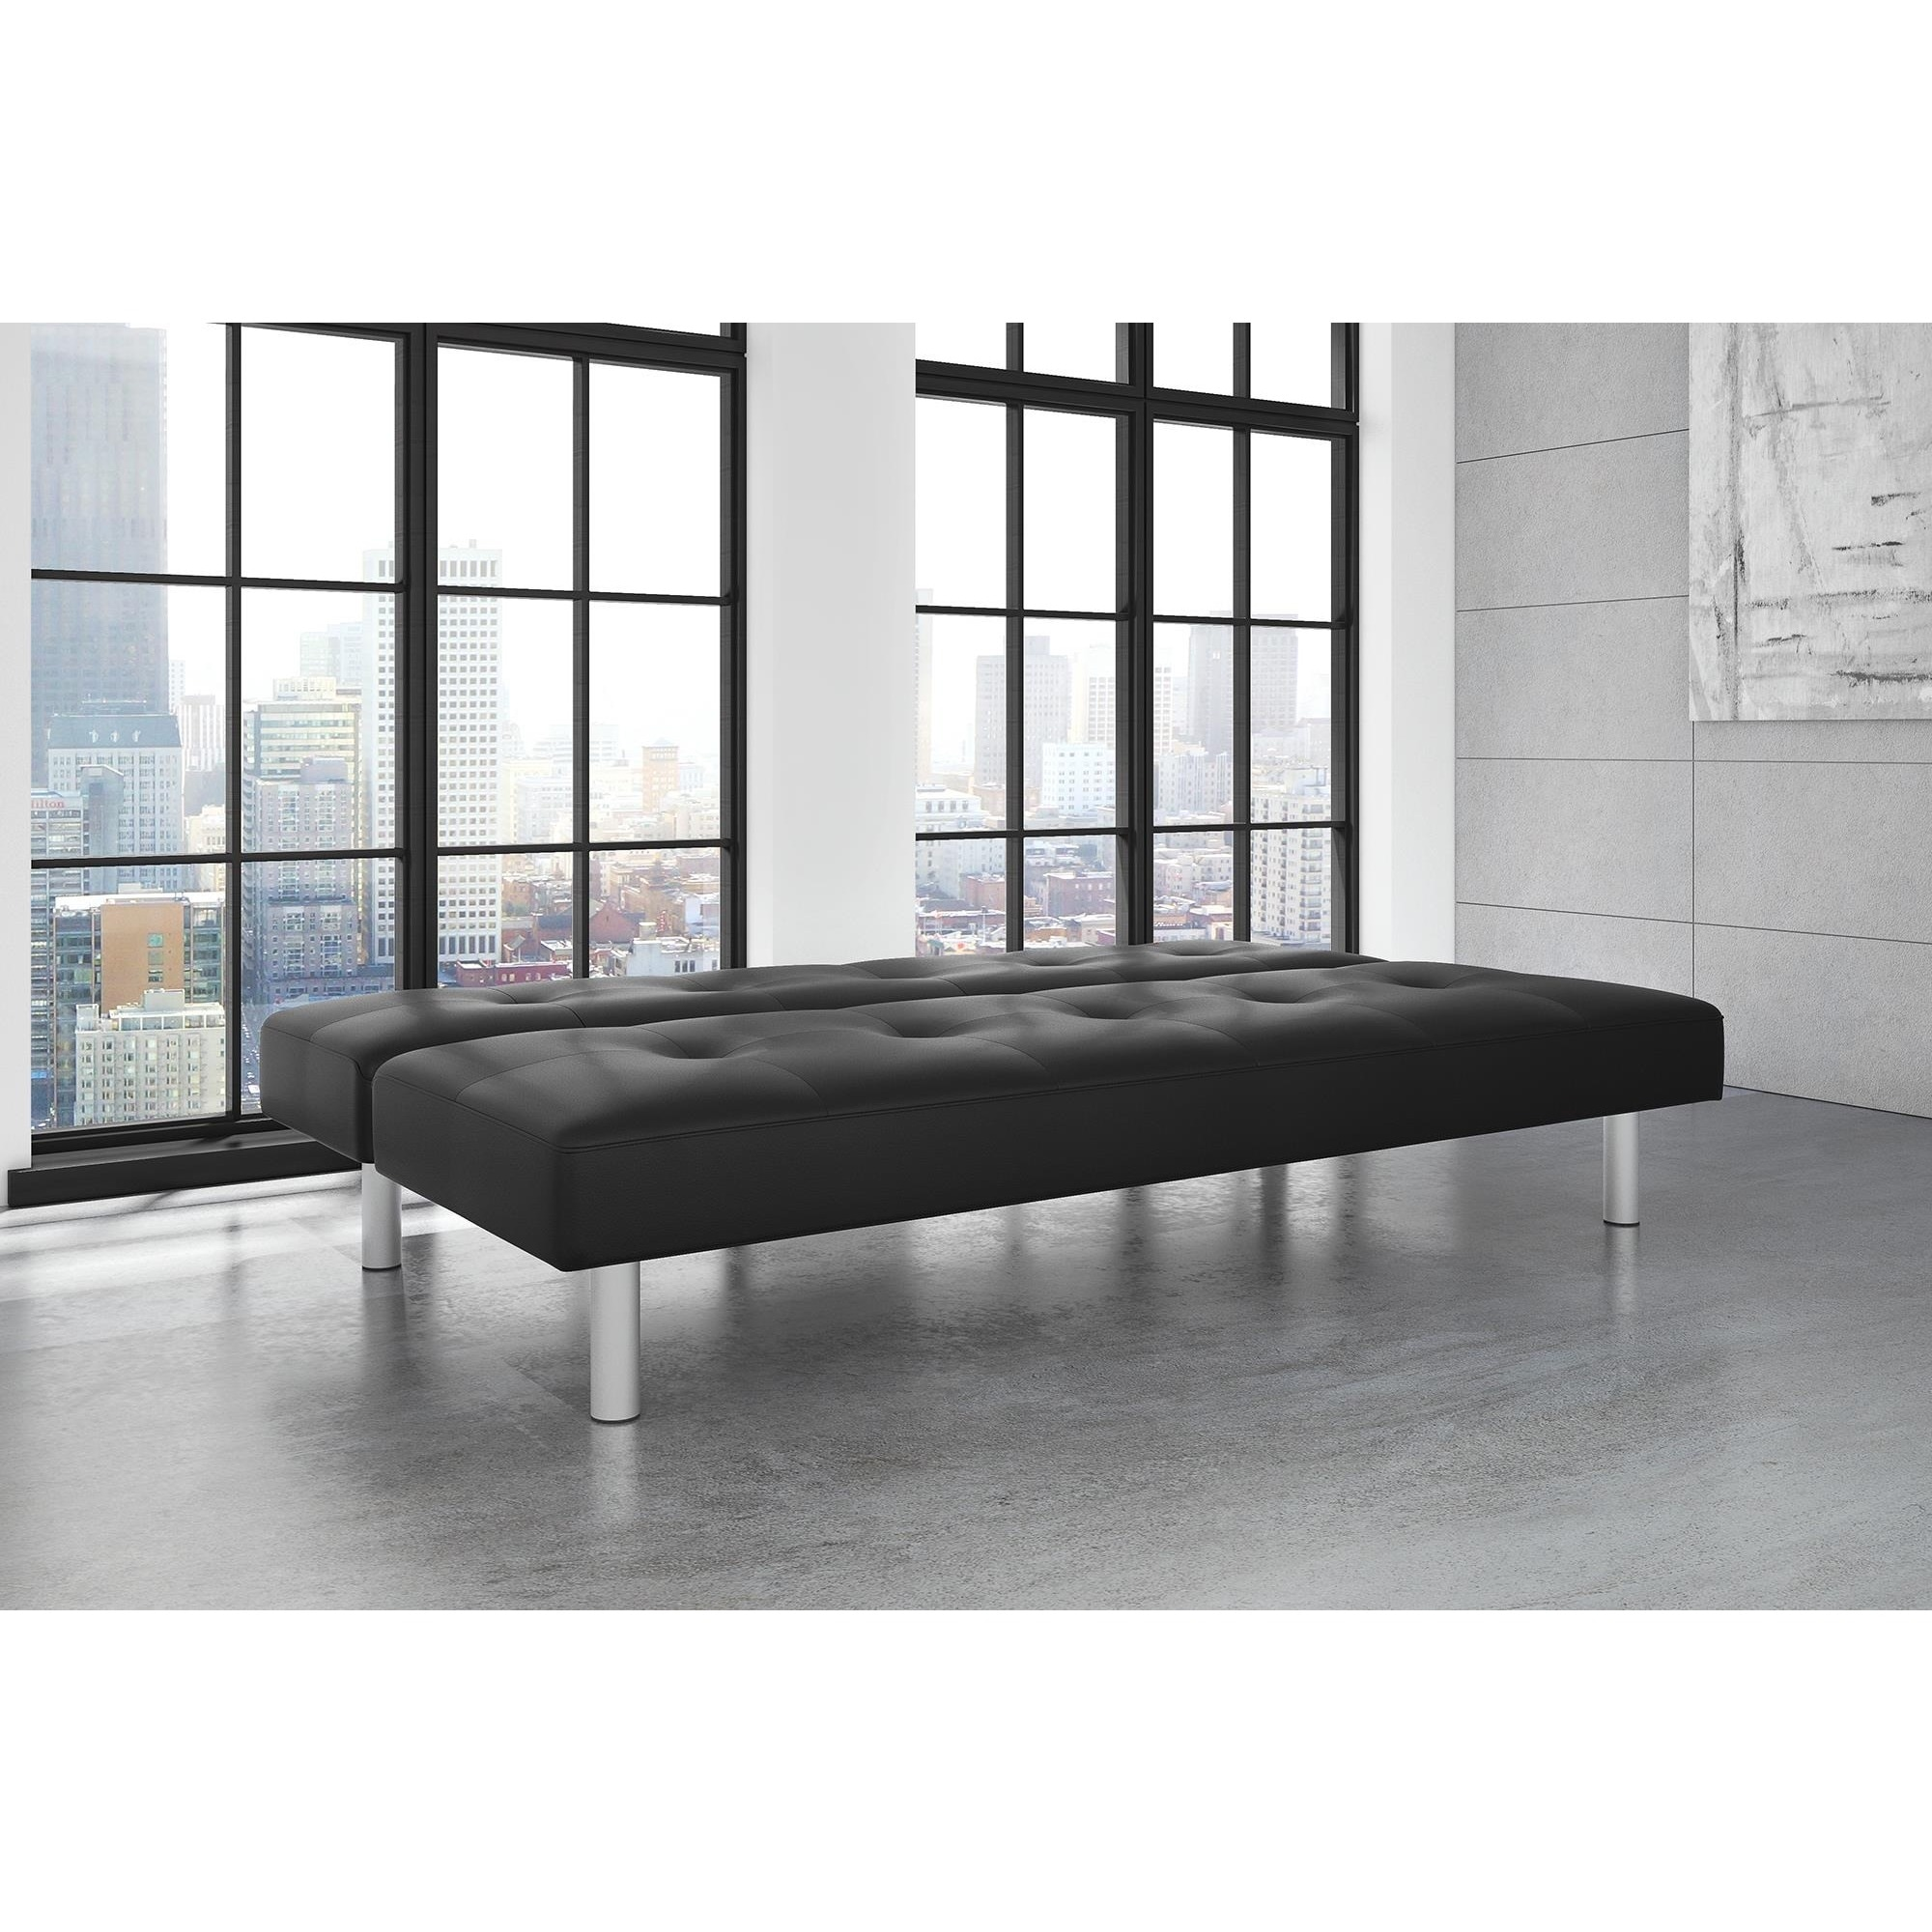 Avenue Greene Noah Futon Sofa Bed Free Shipping Today